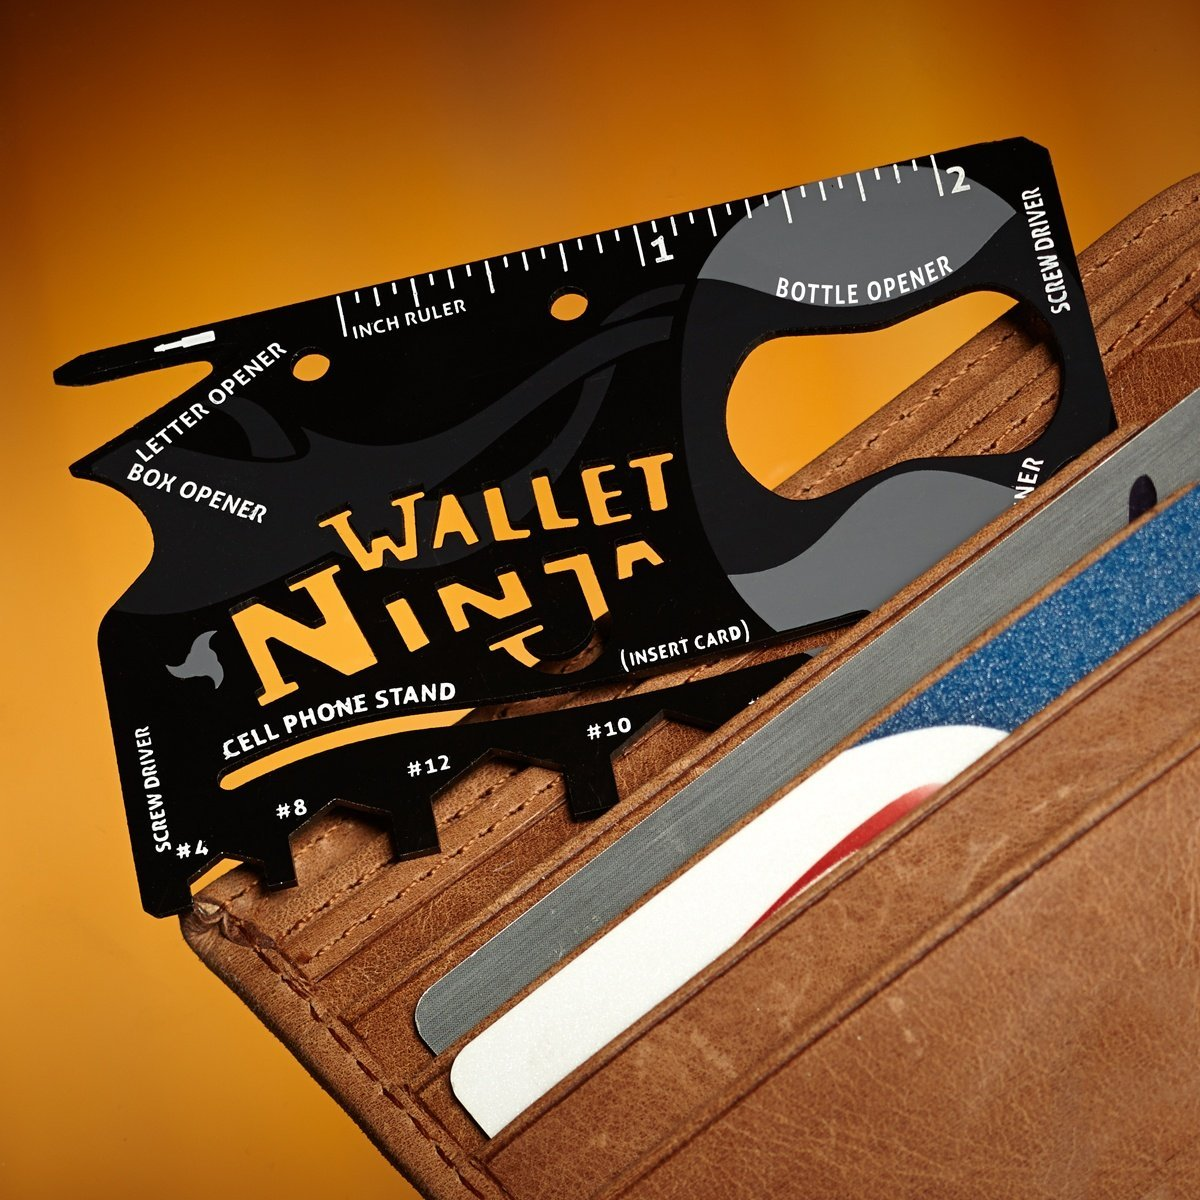 Wallet Ninja 18-in-1 Multi-tool Card - - ThumbsUp! - Yellow Octopus